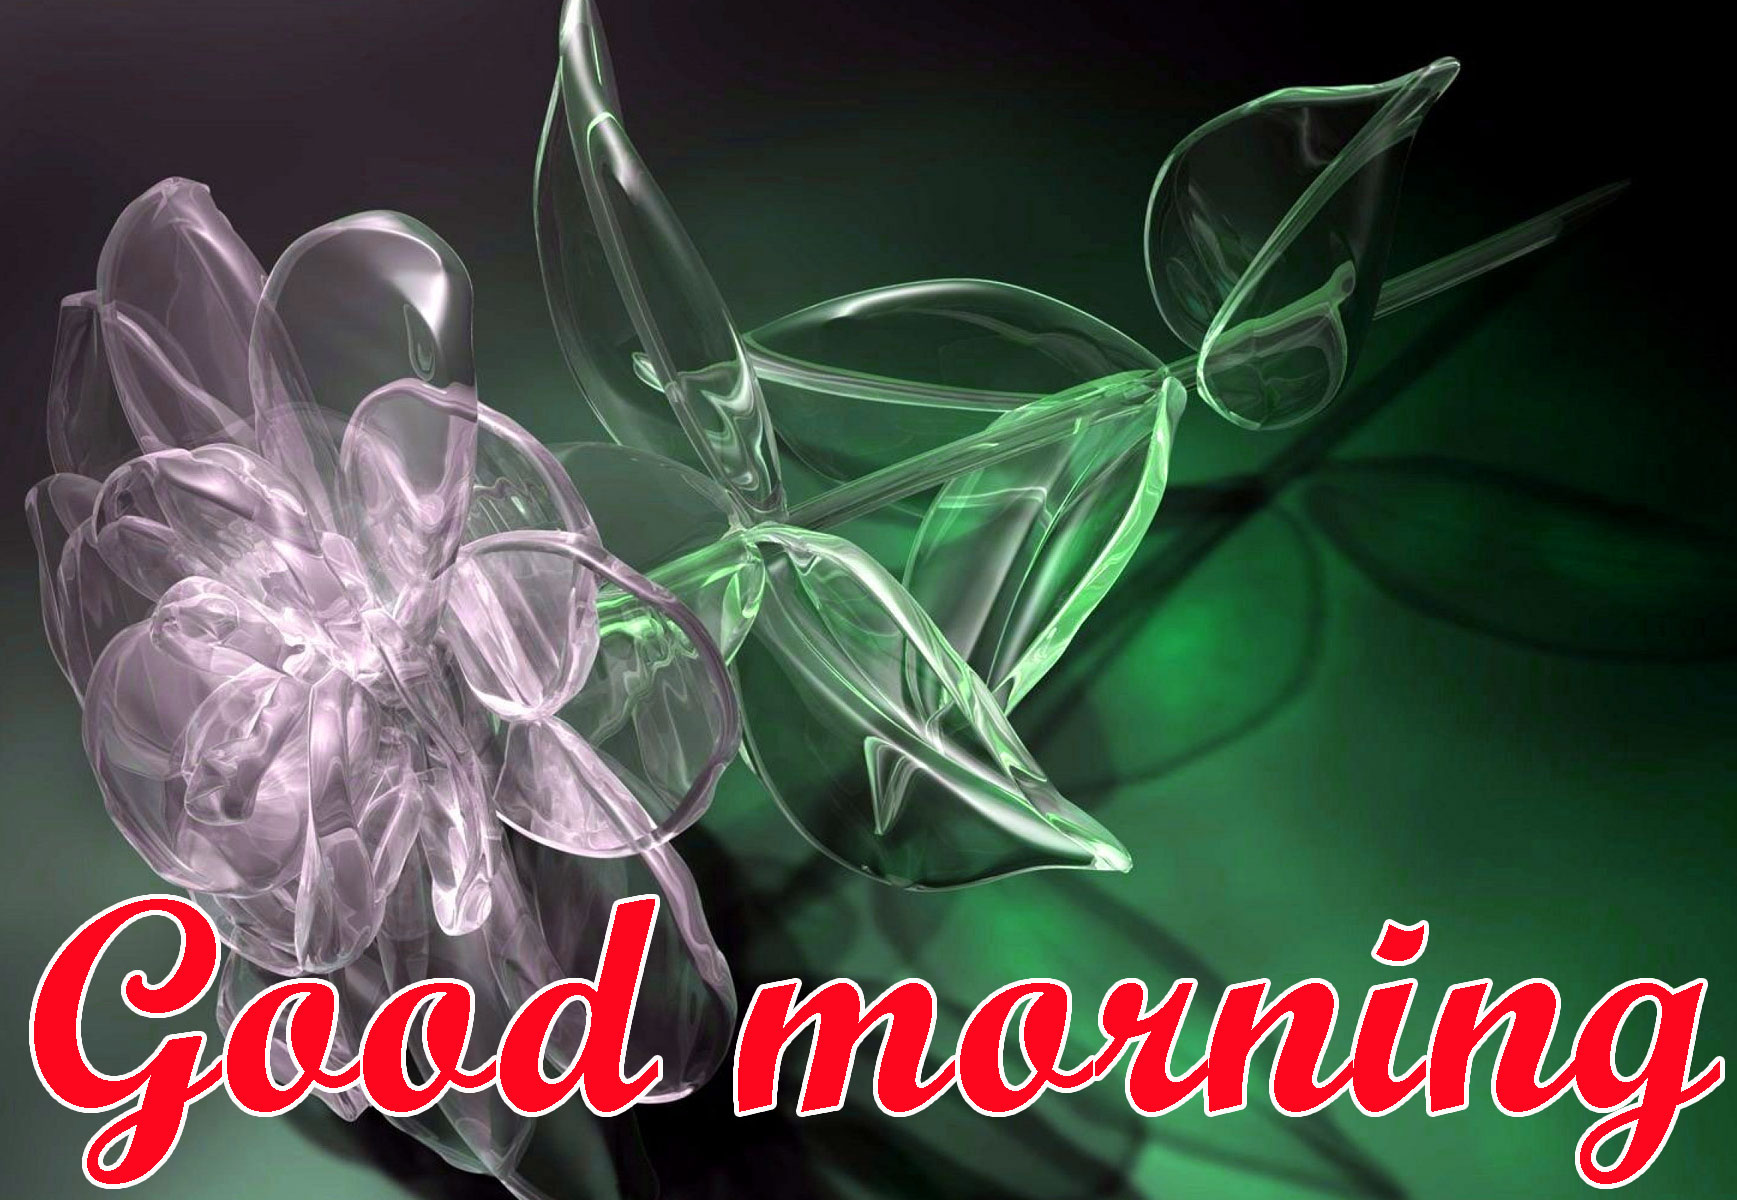 BEAUTIFUL 3D GOOD MORNING IMAGES PHOTO PICS FREE HD